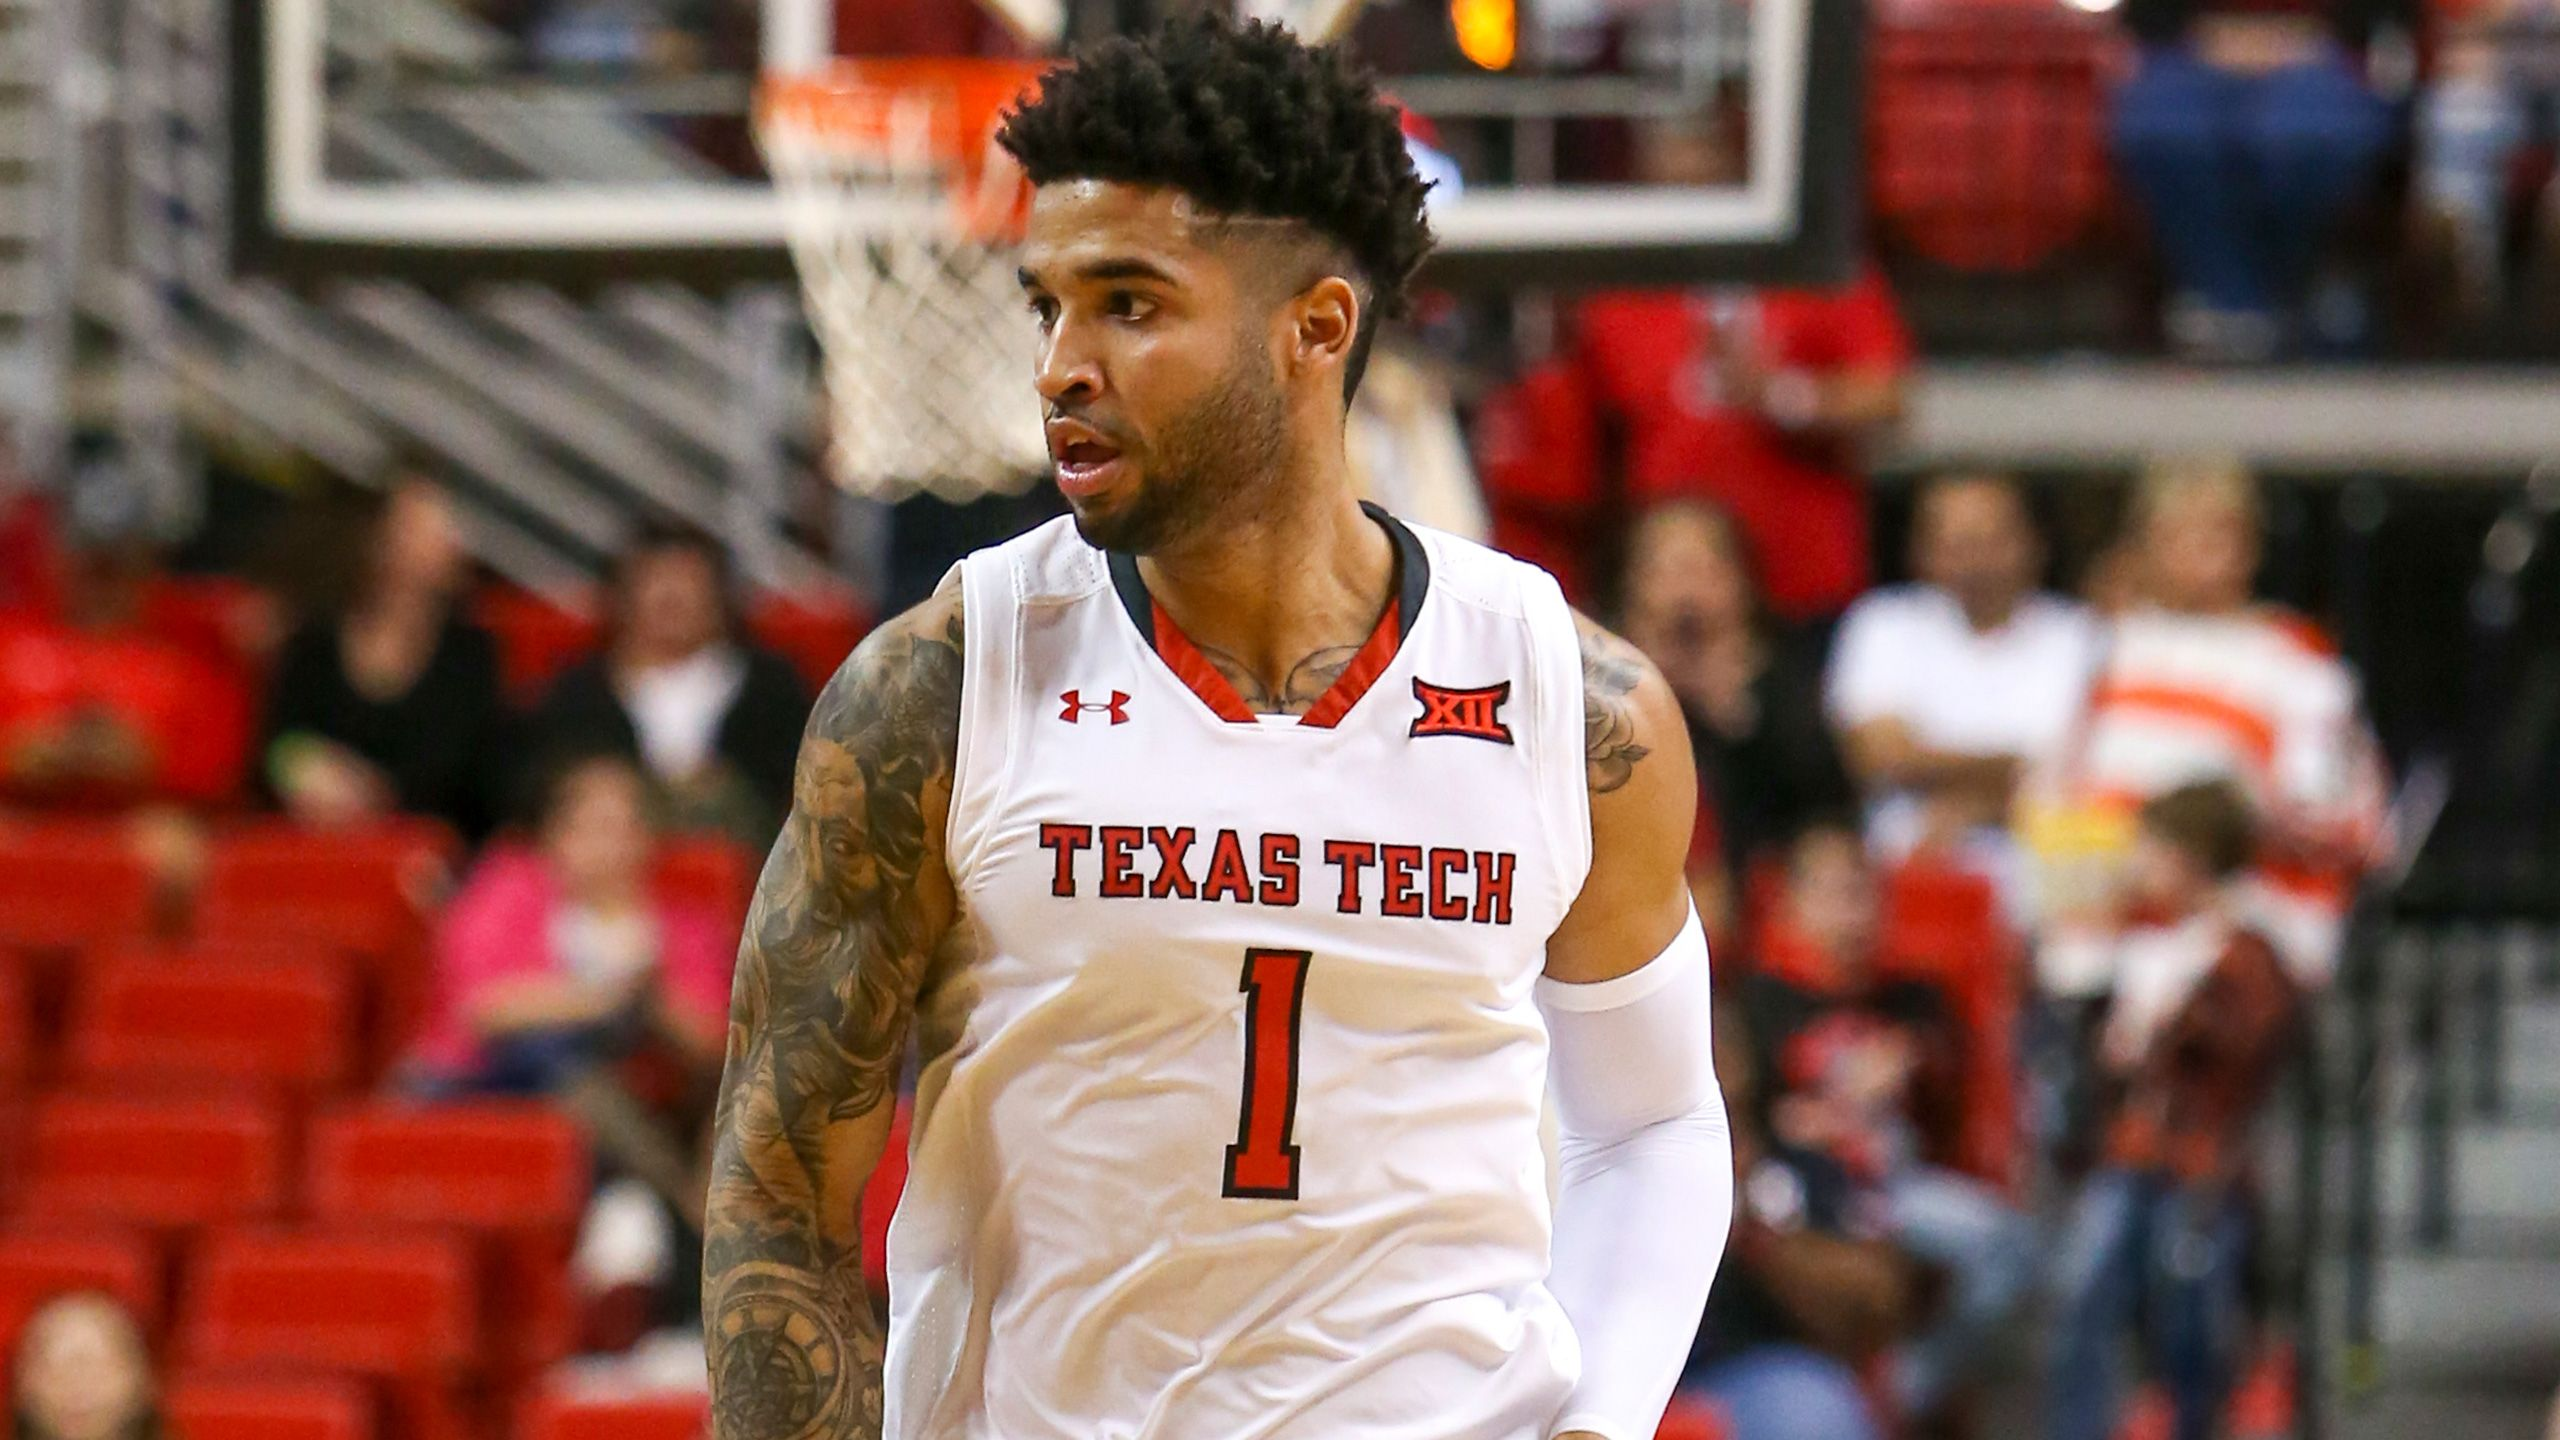 Iowa State vs. #8 Texas Tech (M Basketball) (re-air)